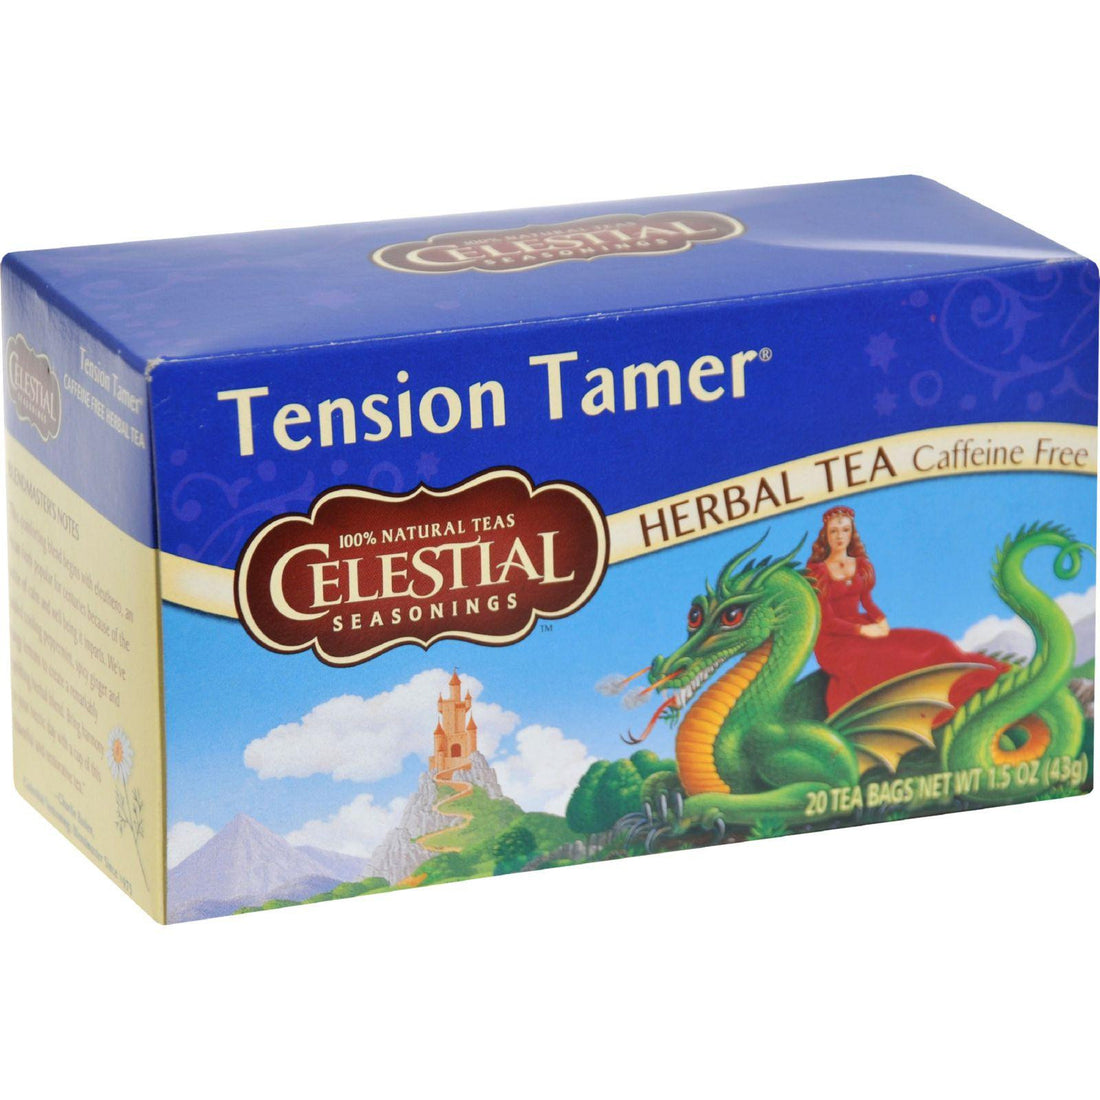 Mother Mantis: Celestial Seasonings Tension Tamer Herbal Tea Caffeine Free - 20 Tea Bags - Case Of 6 Celestial Seasonings